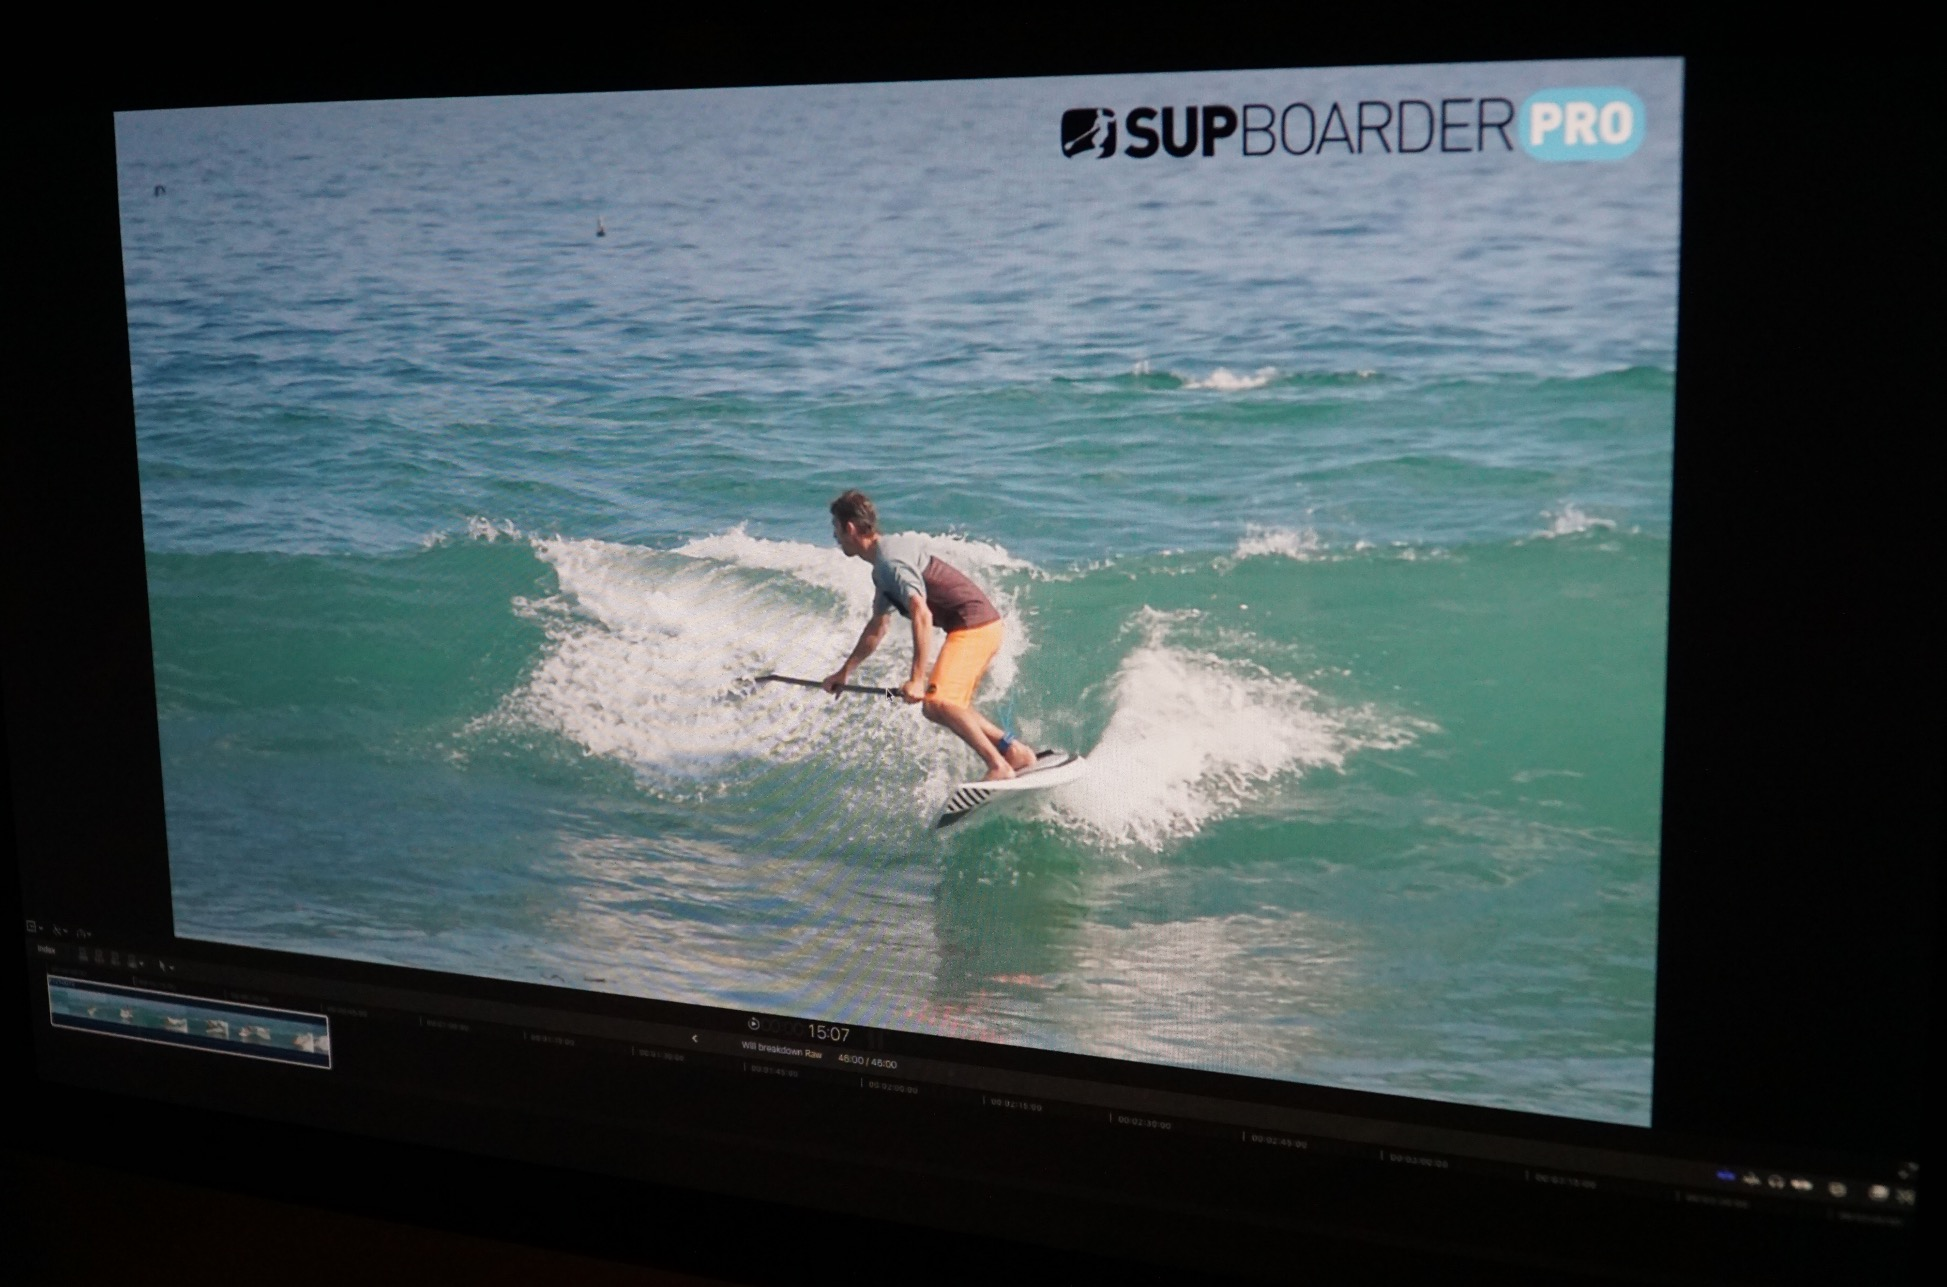 SUPboarder Pro Video breakdown